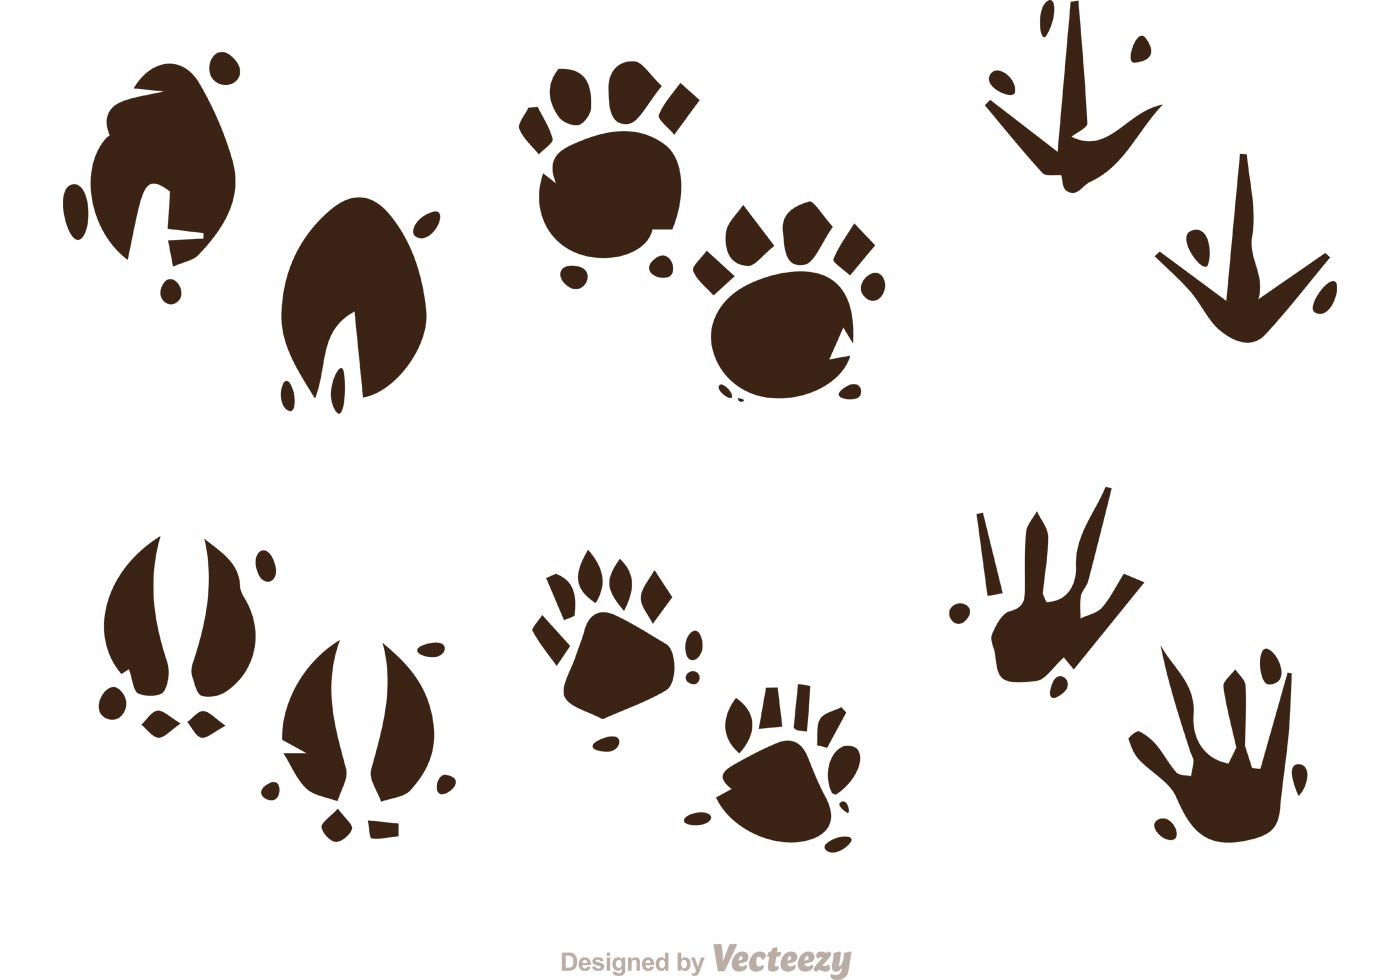 Muddy Animal Footprint Vectors - Download Free Vectors ...